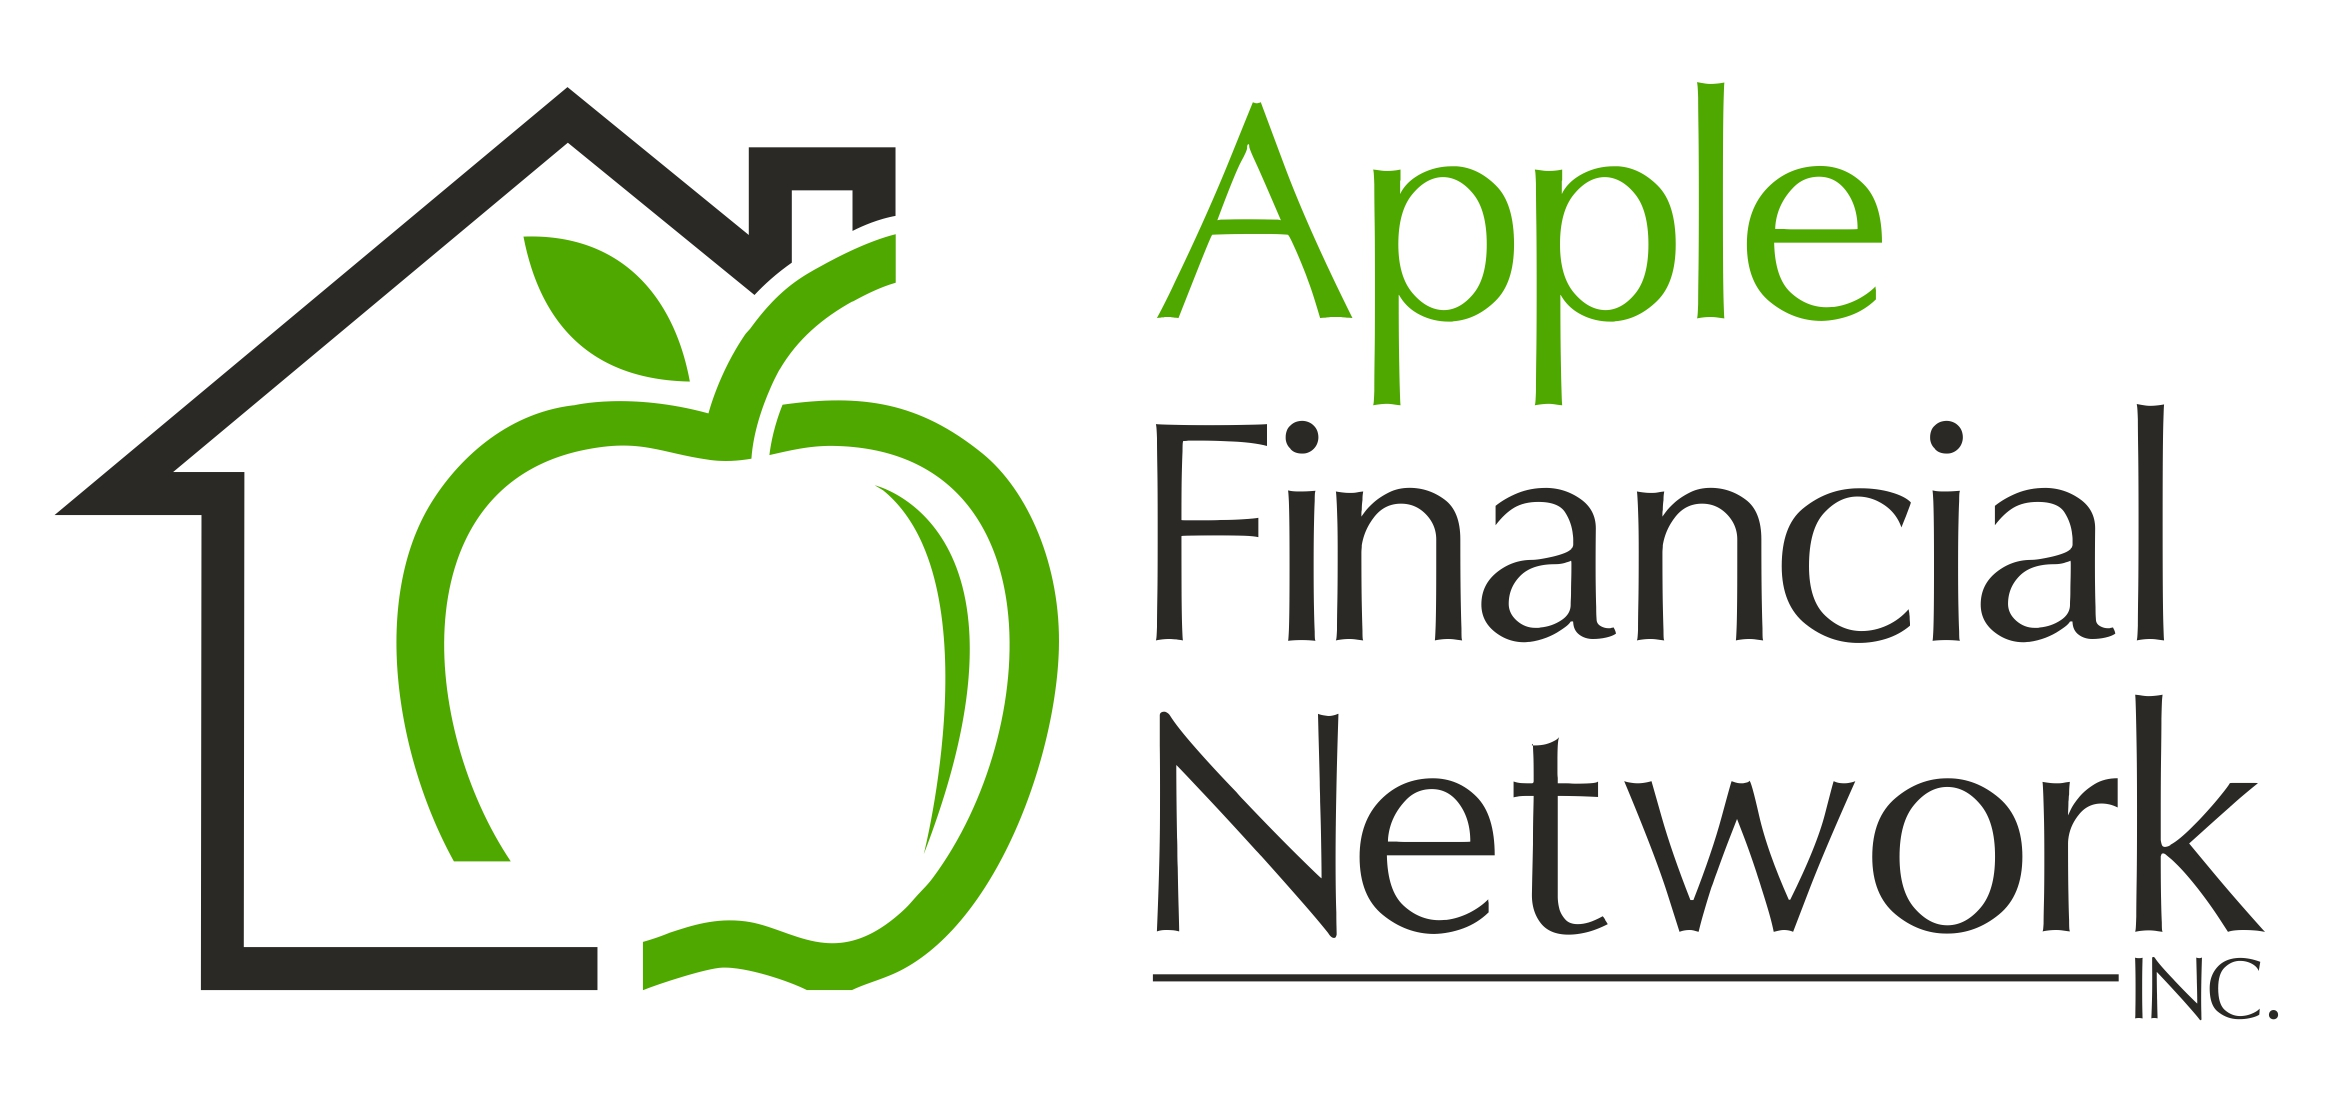 Apple Financial Network, Inc reviews | Real Estate at 3200 E Guasti Rd. - Ontario CA